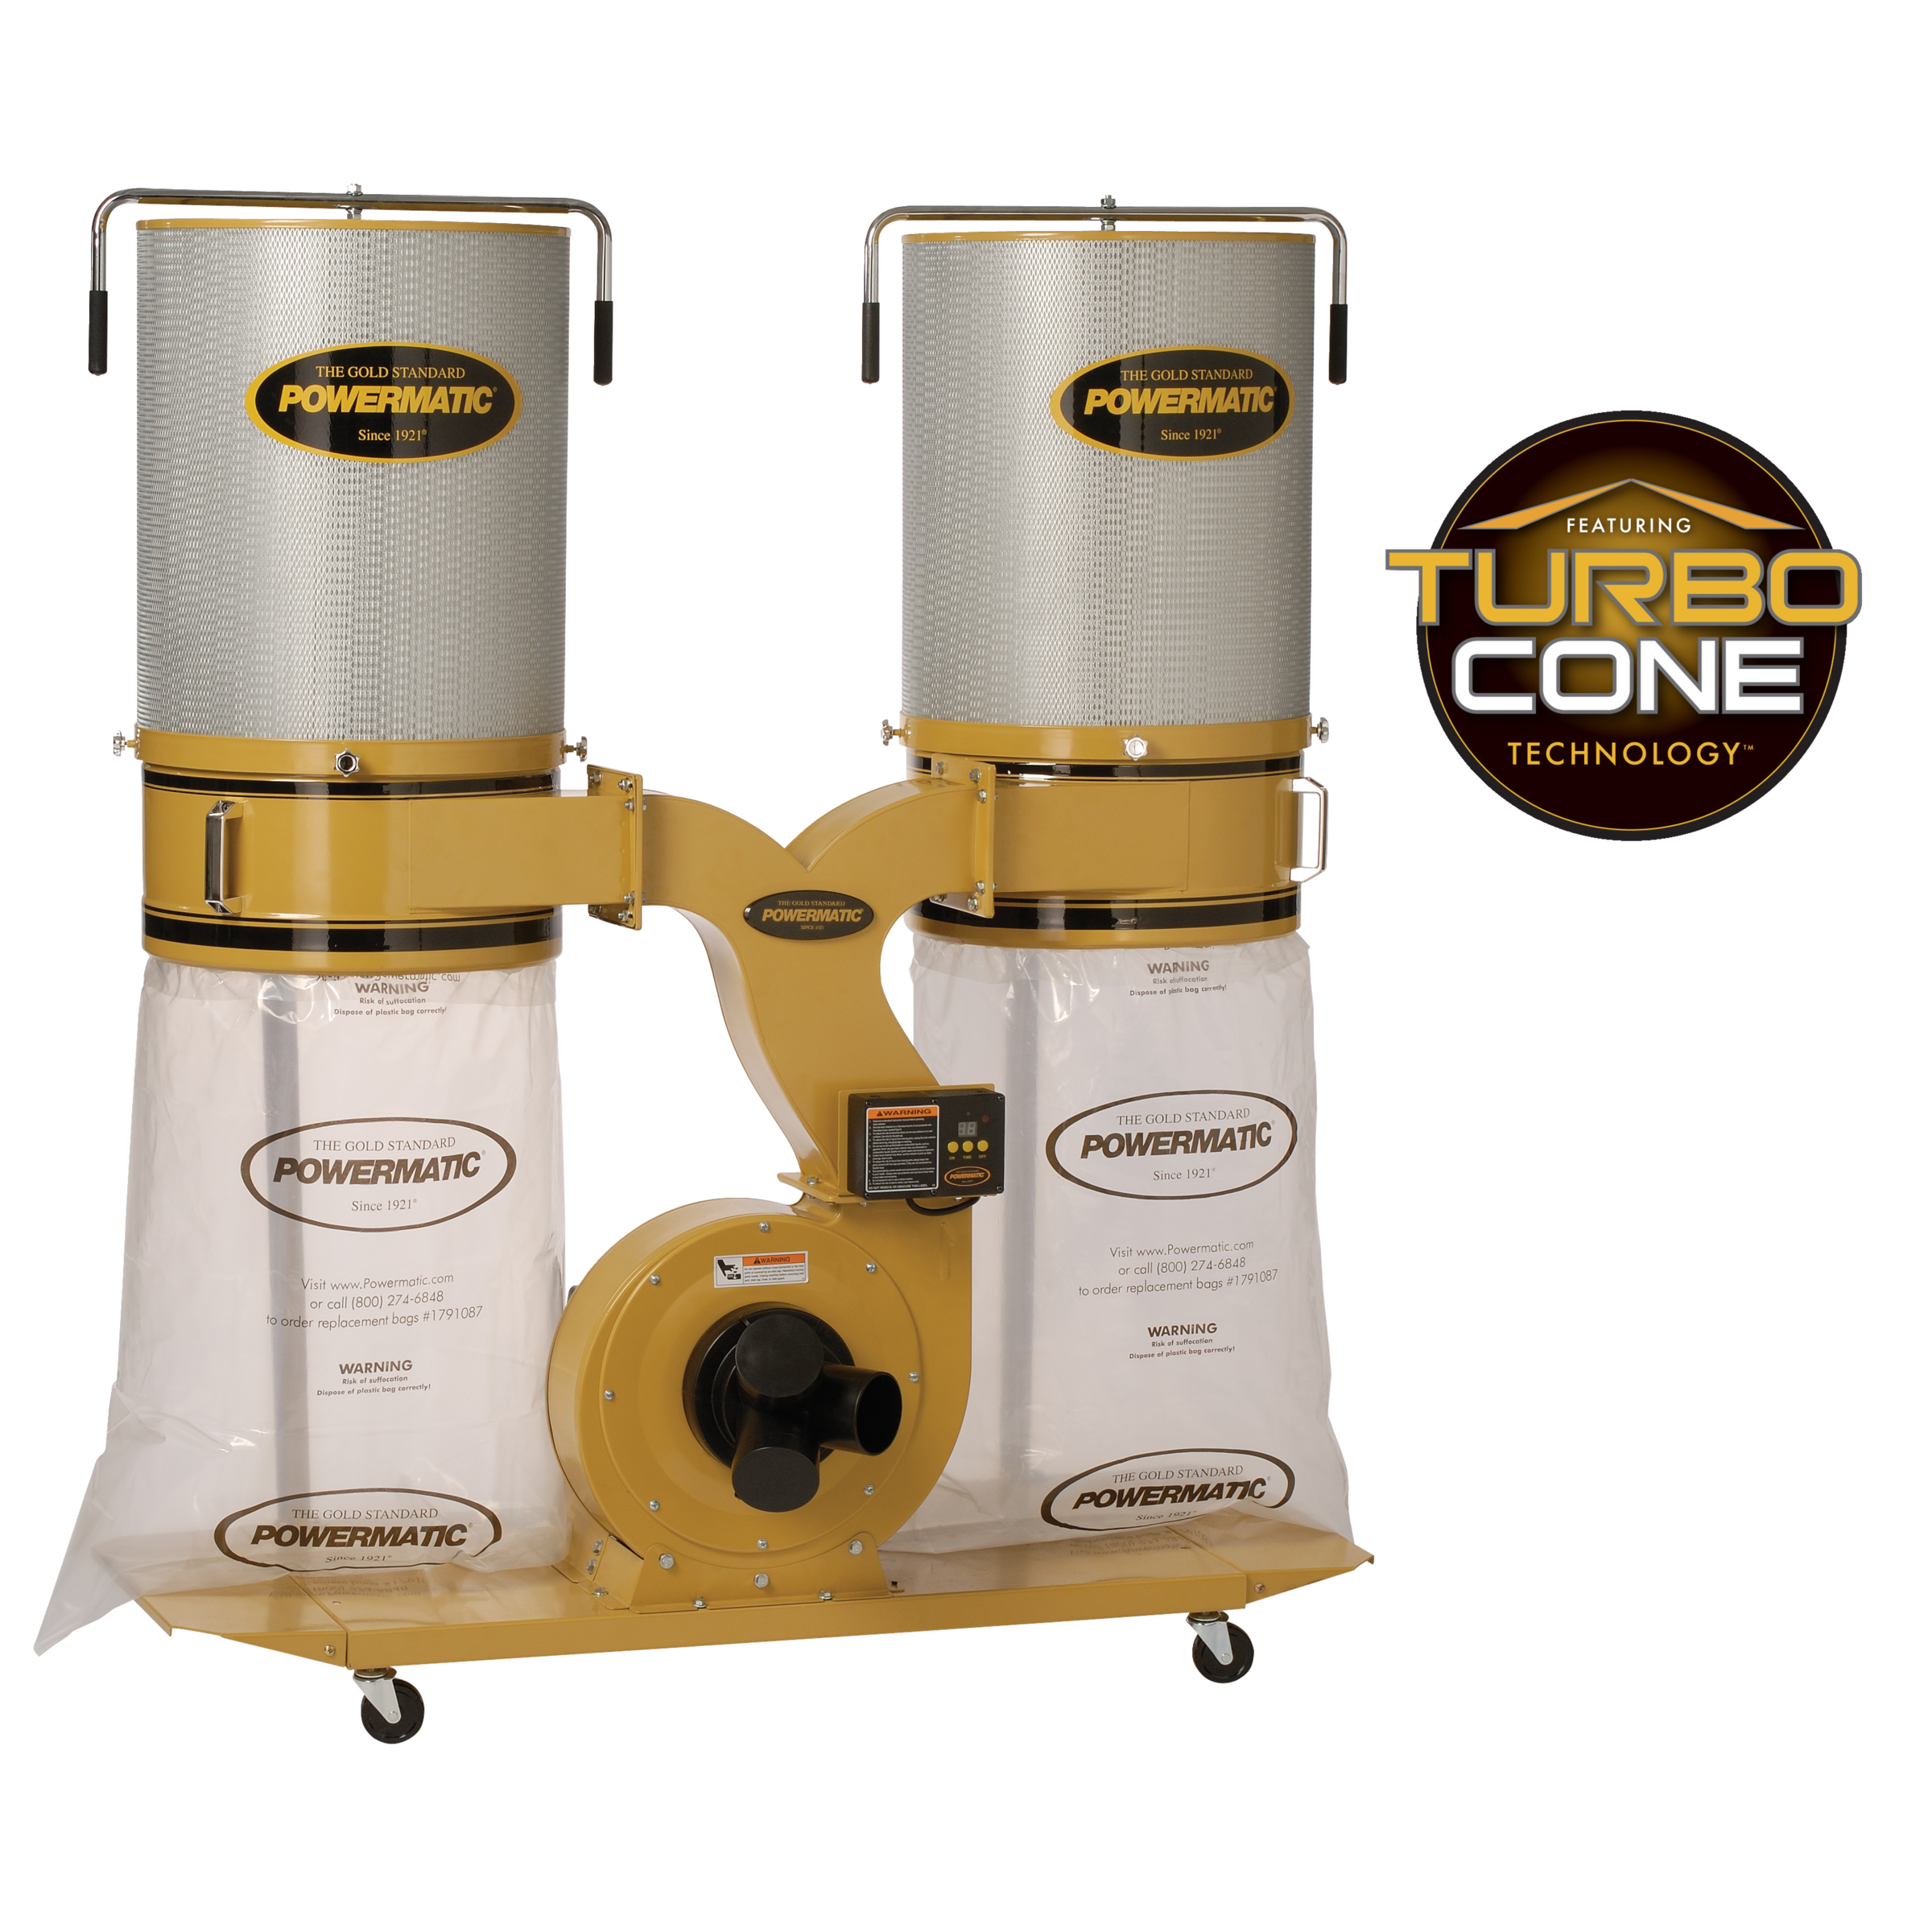 Powermatic PM1900TX-CK1 Dust Collector w/ Canister Kit 3HP 1PH - 1792072K